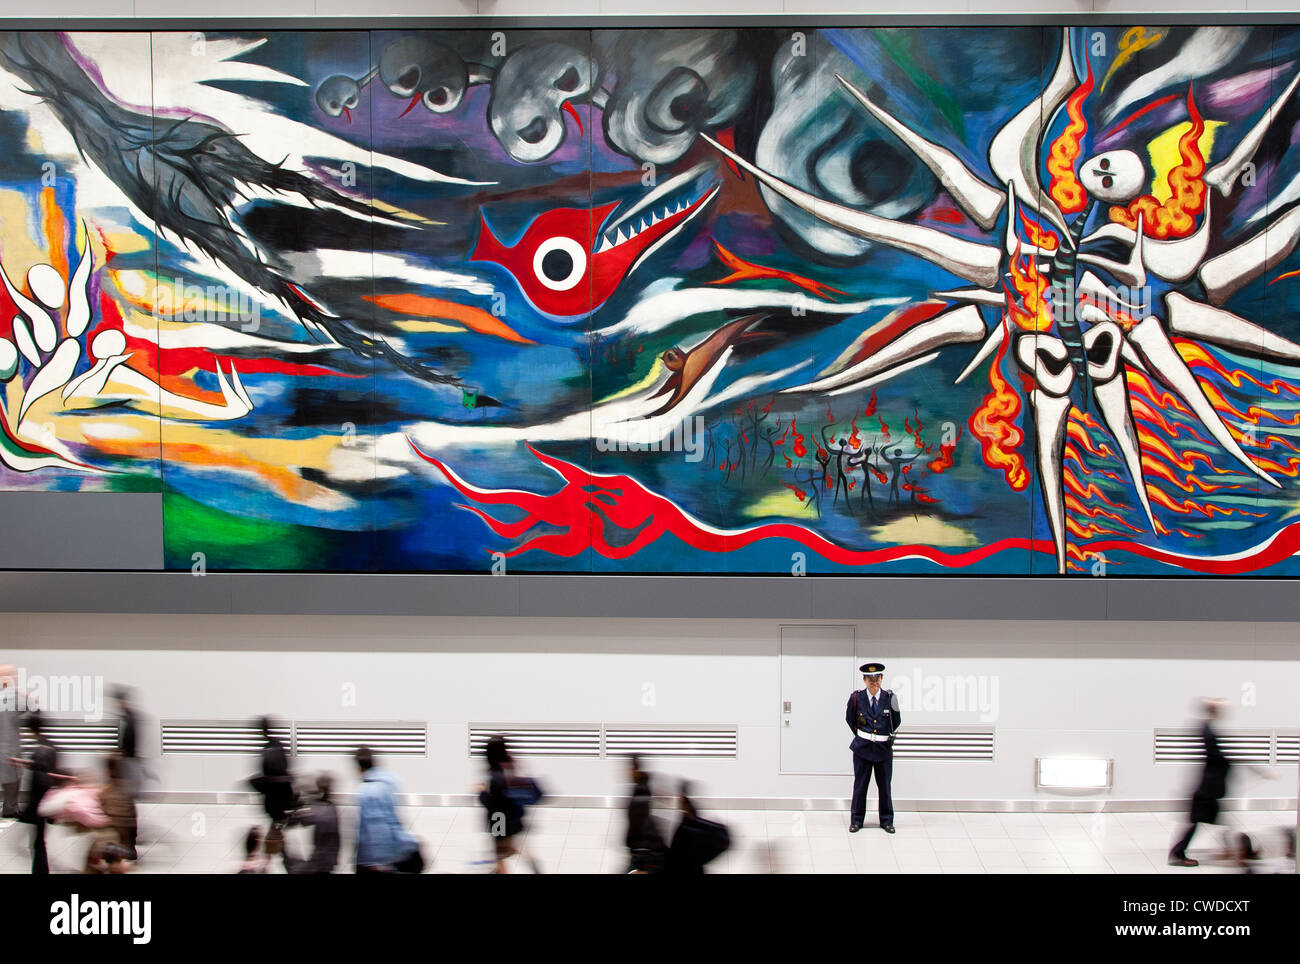 A security guard stands in front of the 30-metre-long painting called 'Myrth of Tomorrow' in Shibuya Station, - Stock Image